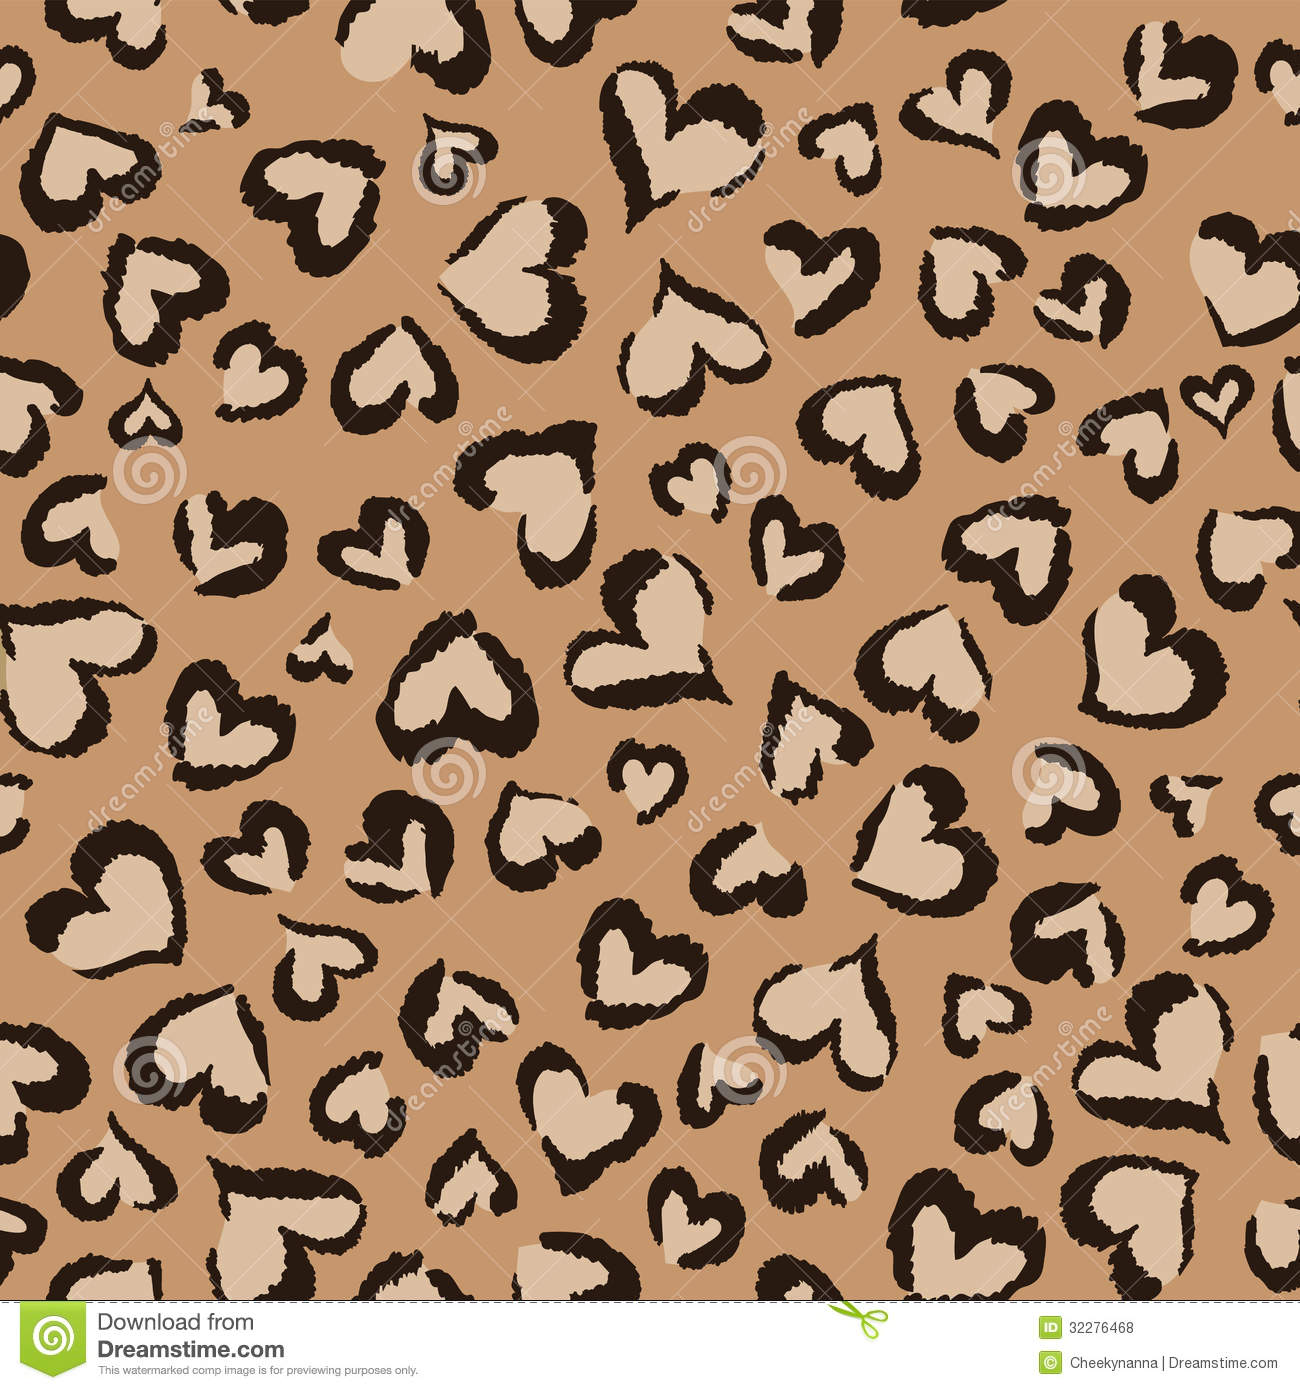 Cute Pink Teddy Wallpaper Animal Hearts Seamless Background Royalty Free Stock